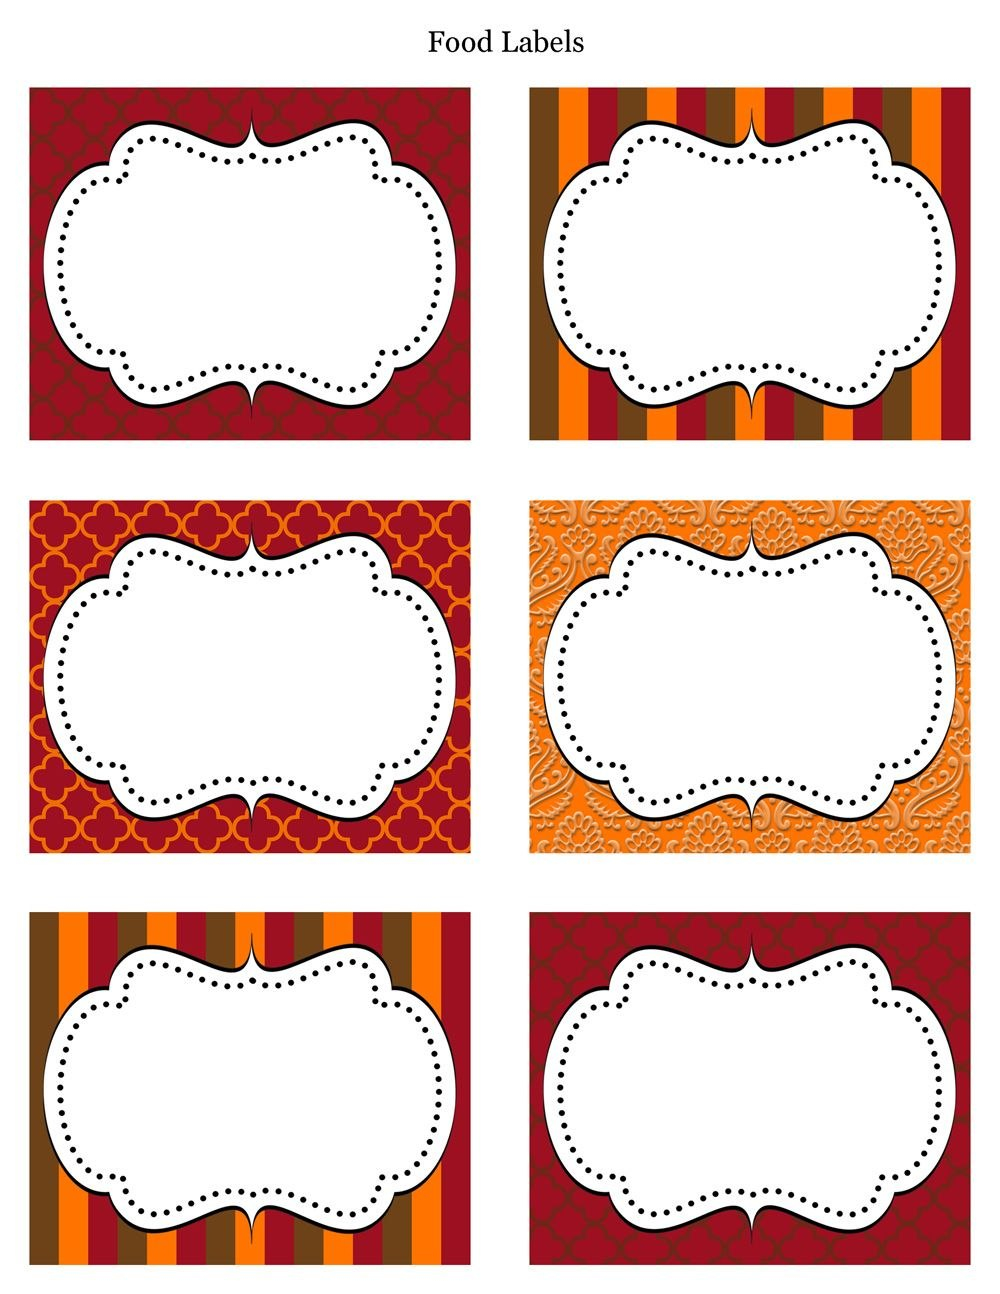 Free Printable Labels  Tags  For Food Buffet Just Printed Them In Food Label Template For Party